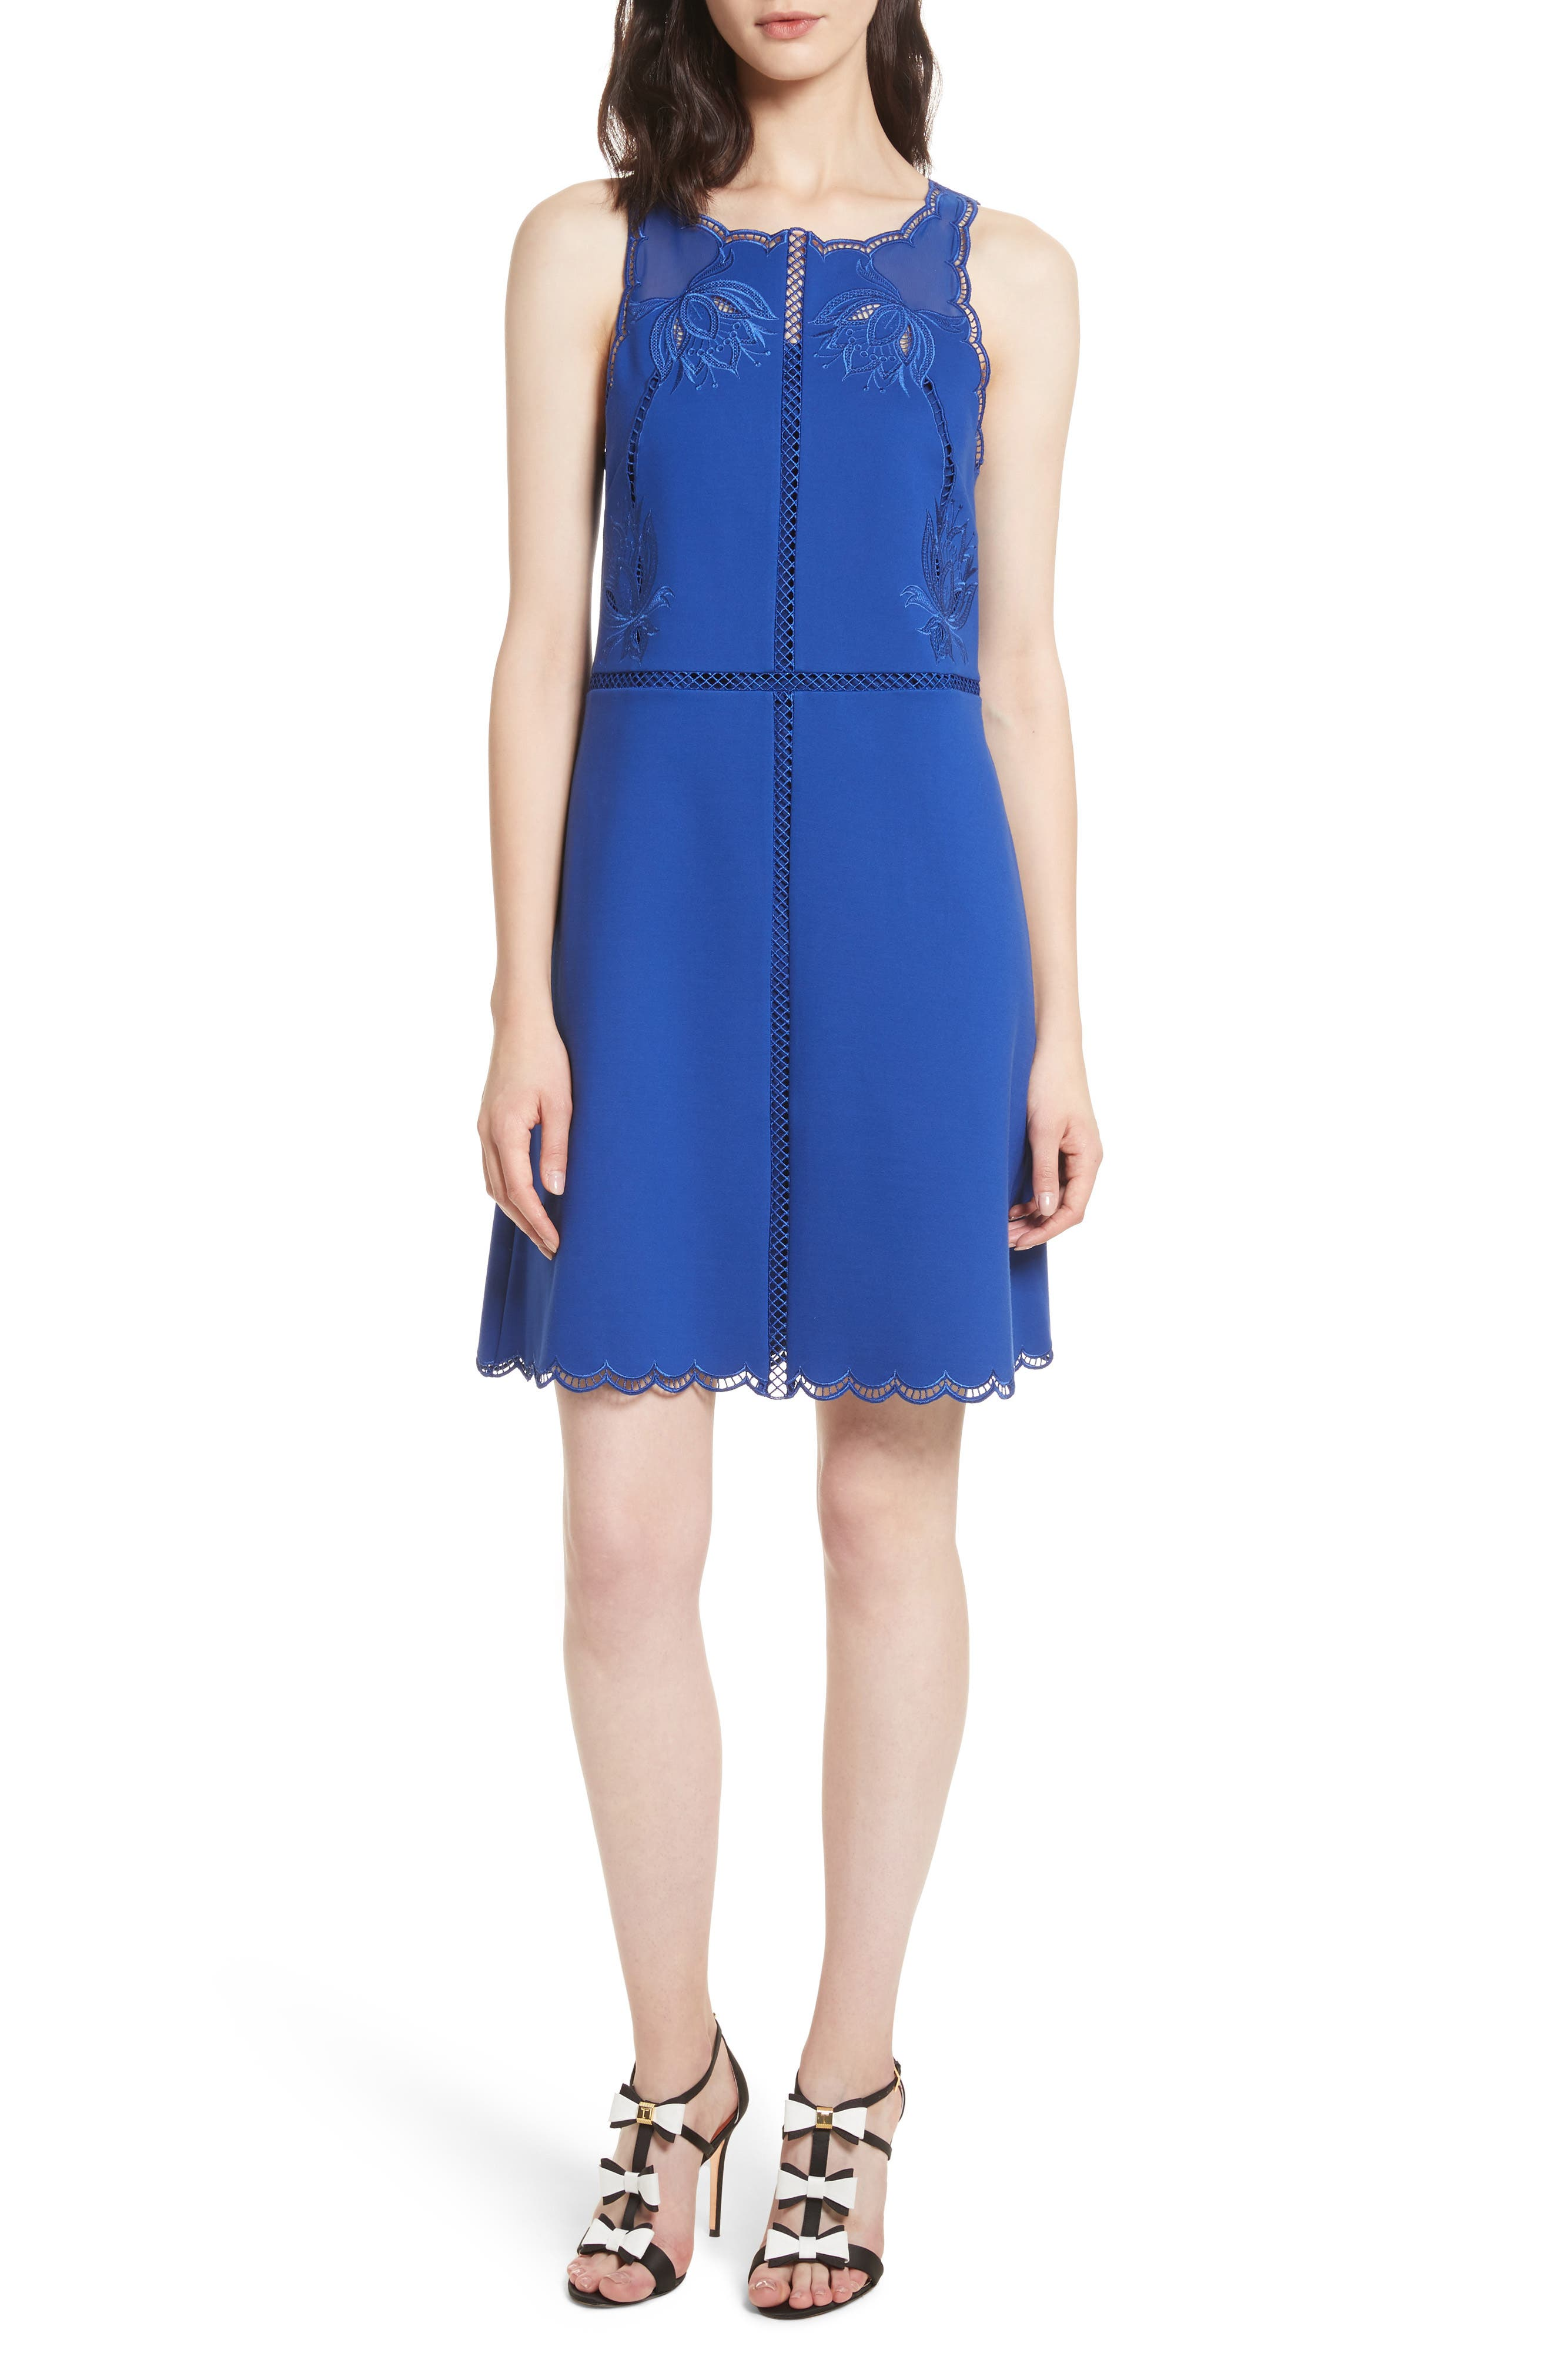 Codi Embroidered Scallop A-Line Dress,                             Main thumbnail 1, color,                             Mid Blue